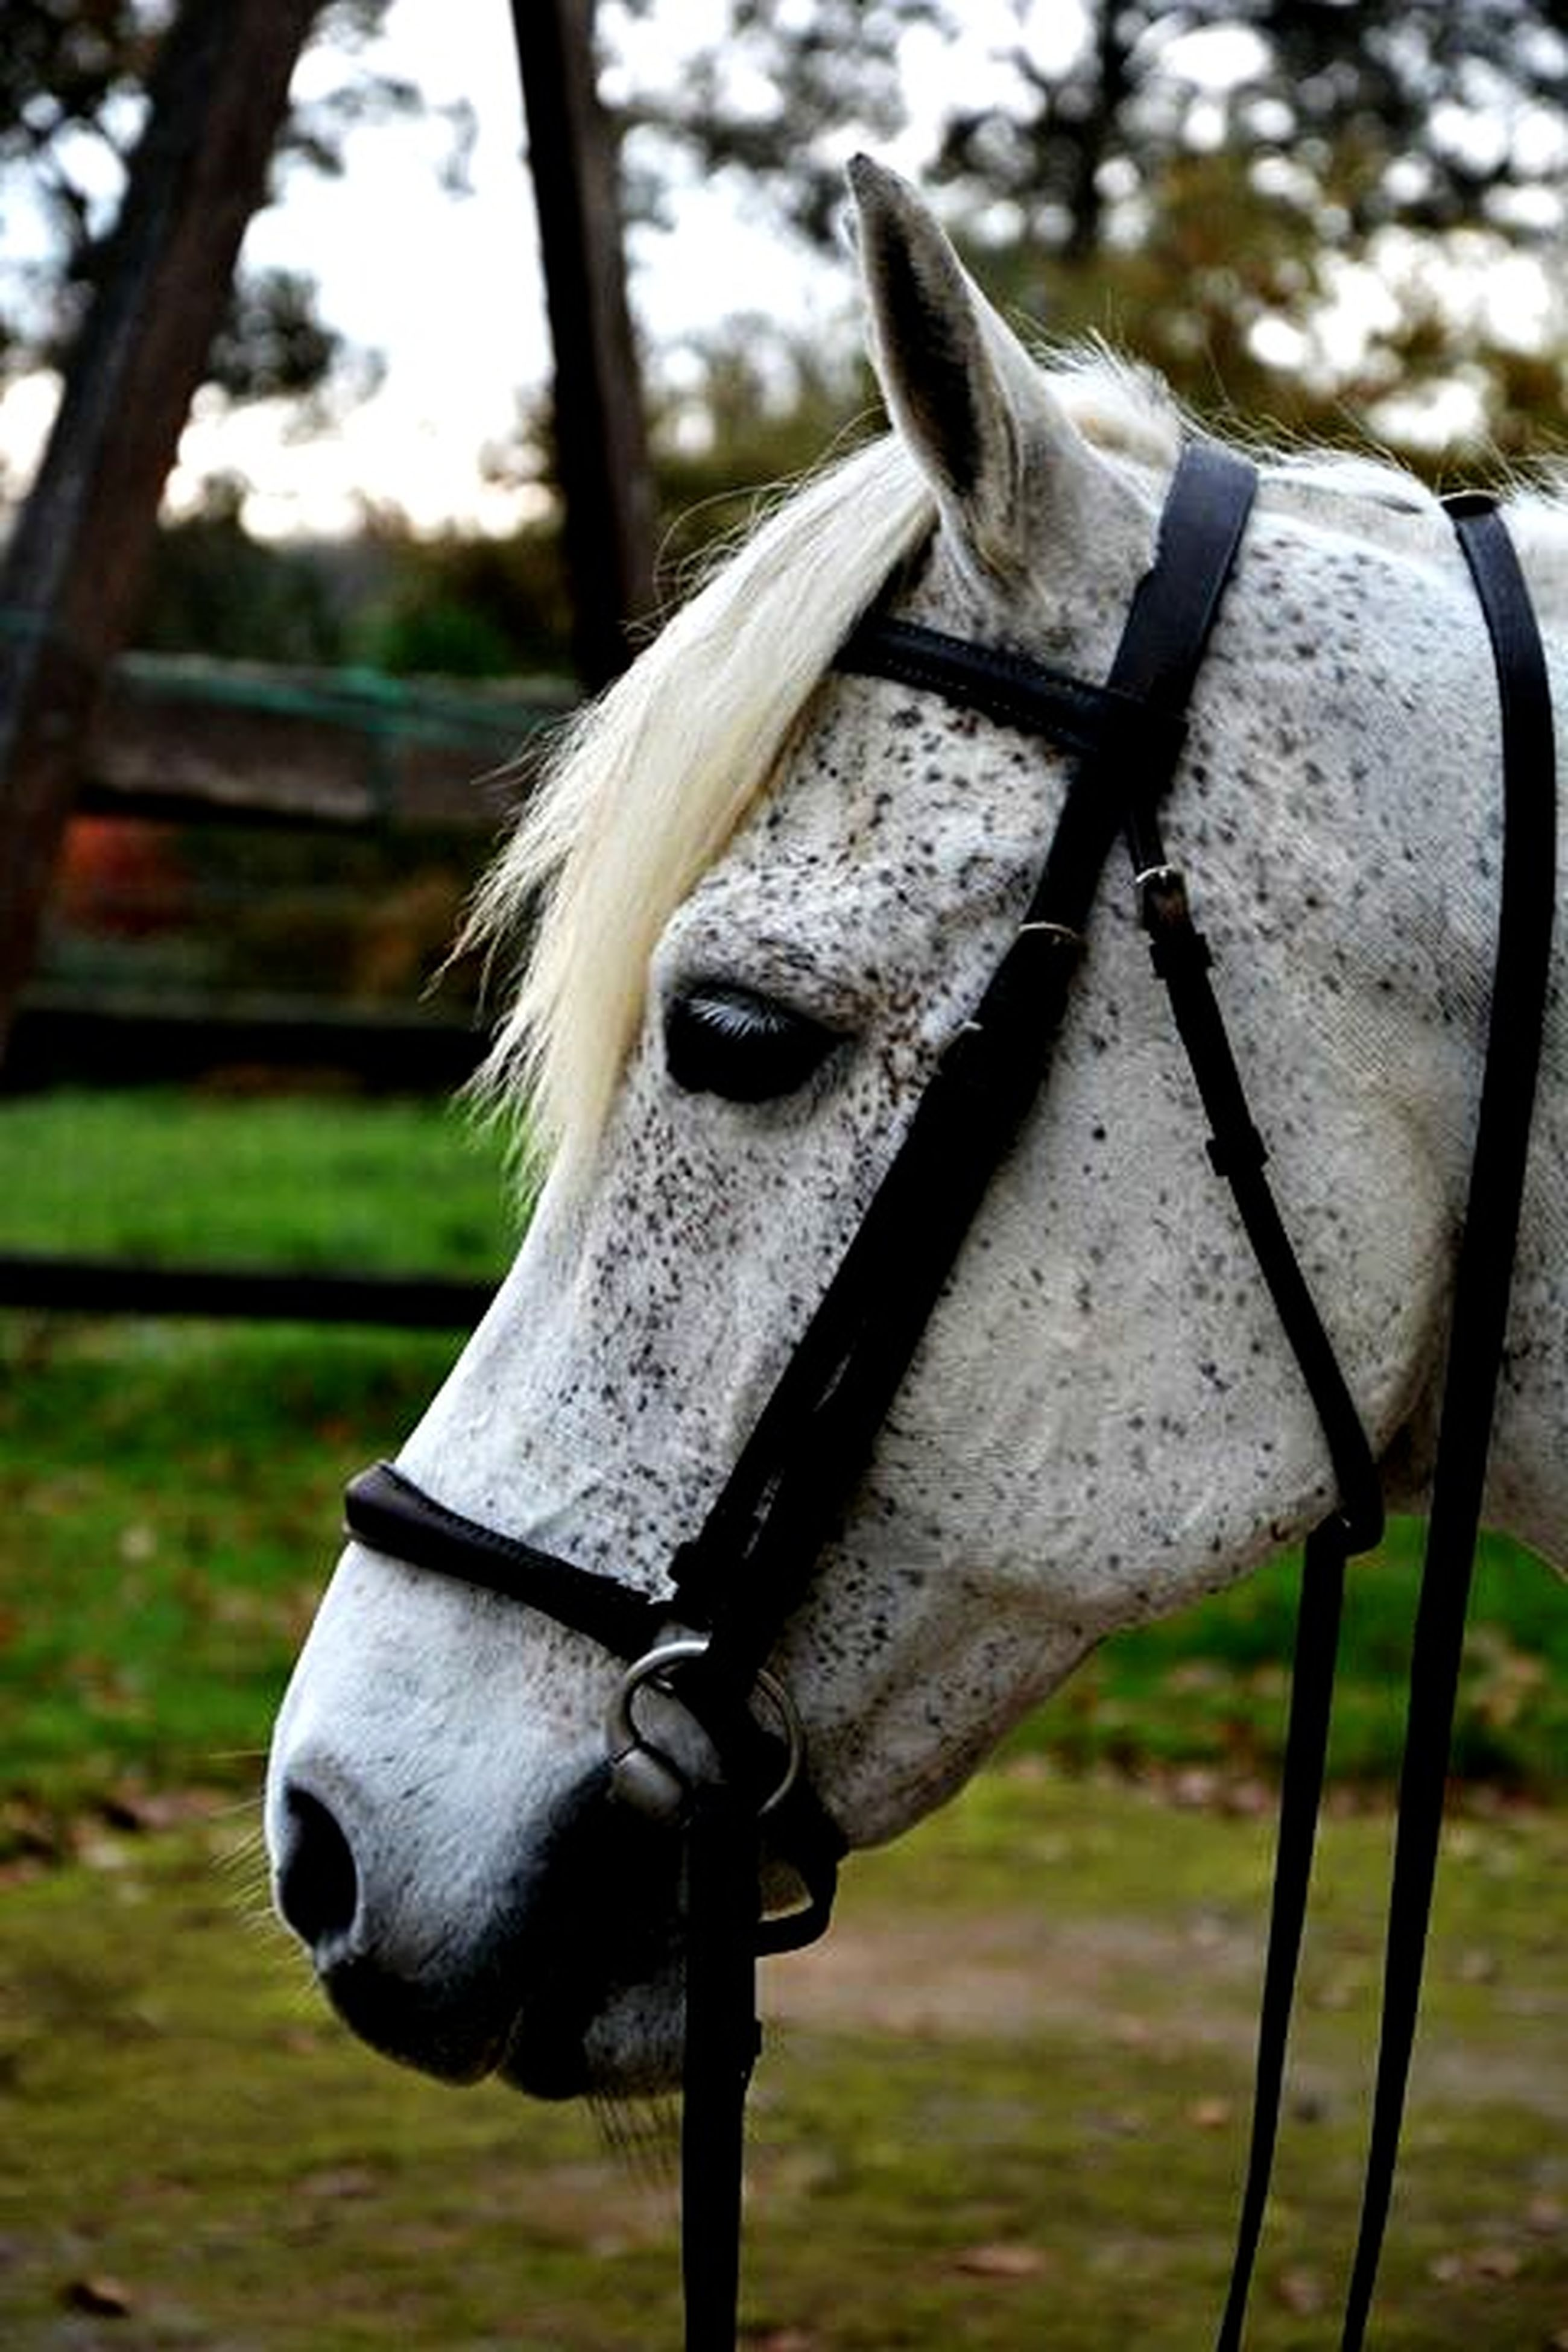 animal themes, one animal, focus on foreground, animal head, horse, close-up, fence, mammal, livestock, animal body part, herbivorous, wildlife, field, animals in the wild, domestic animals, day, bridle, part of, outdoors, metal